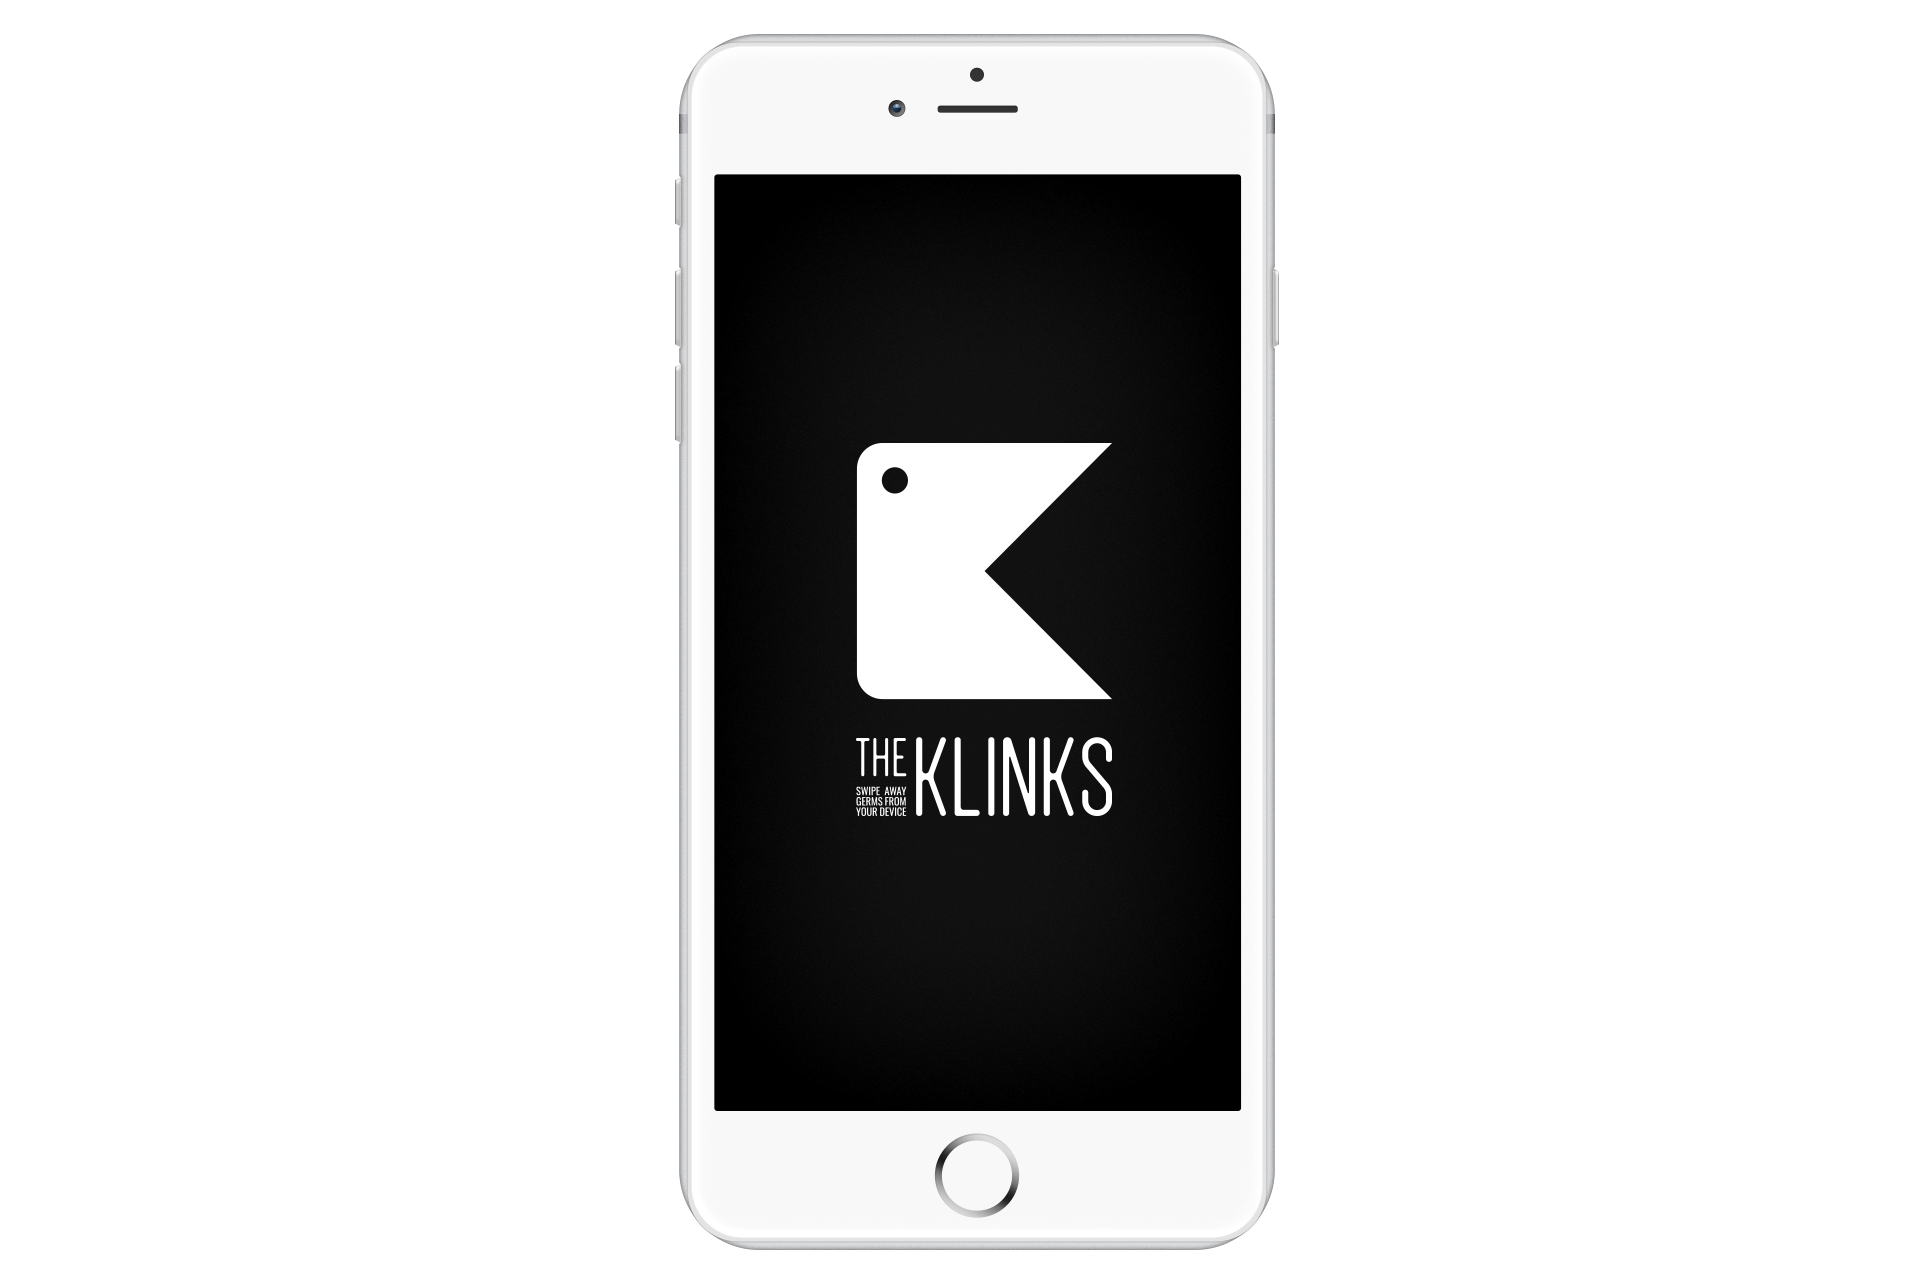 the klinks, antibacterial, germs, swipe, wipes, bacteria, devices, wipe